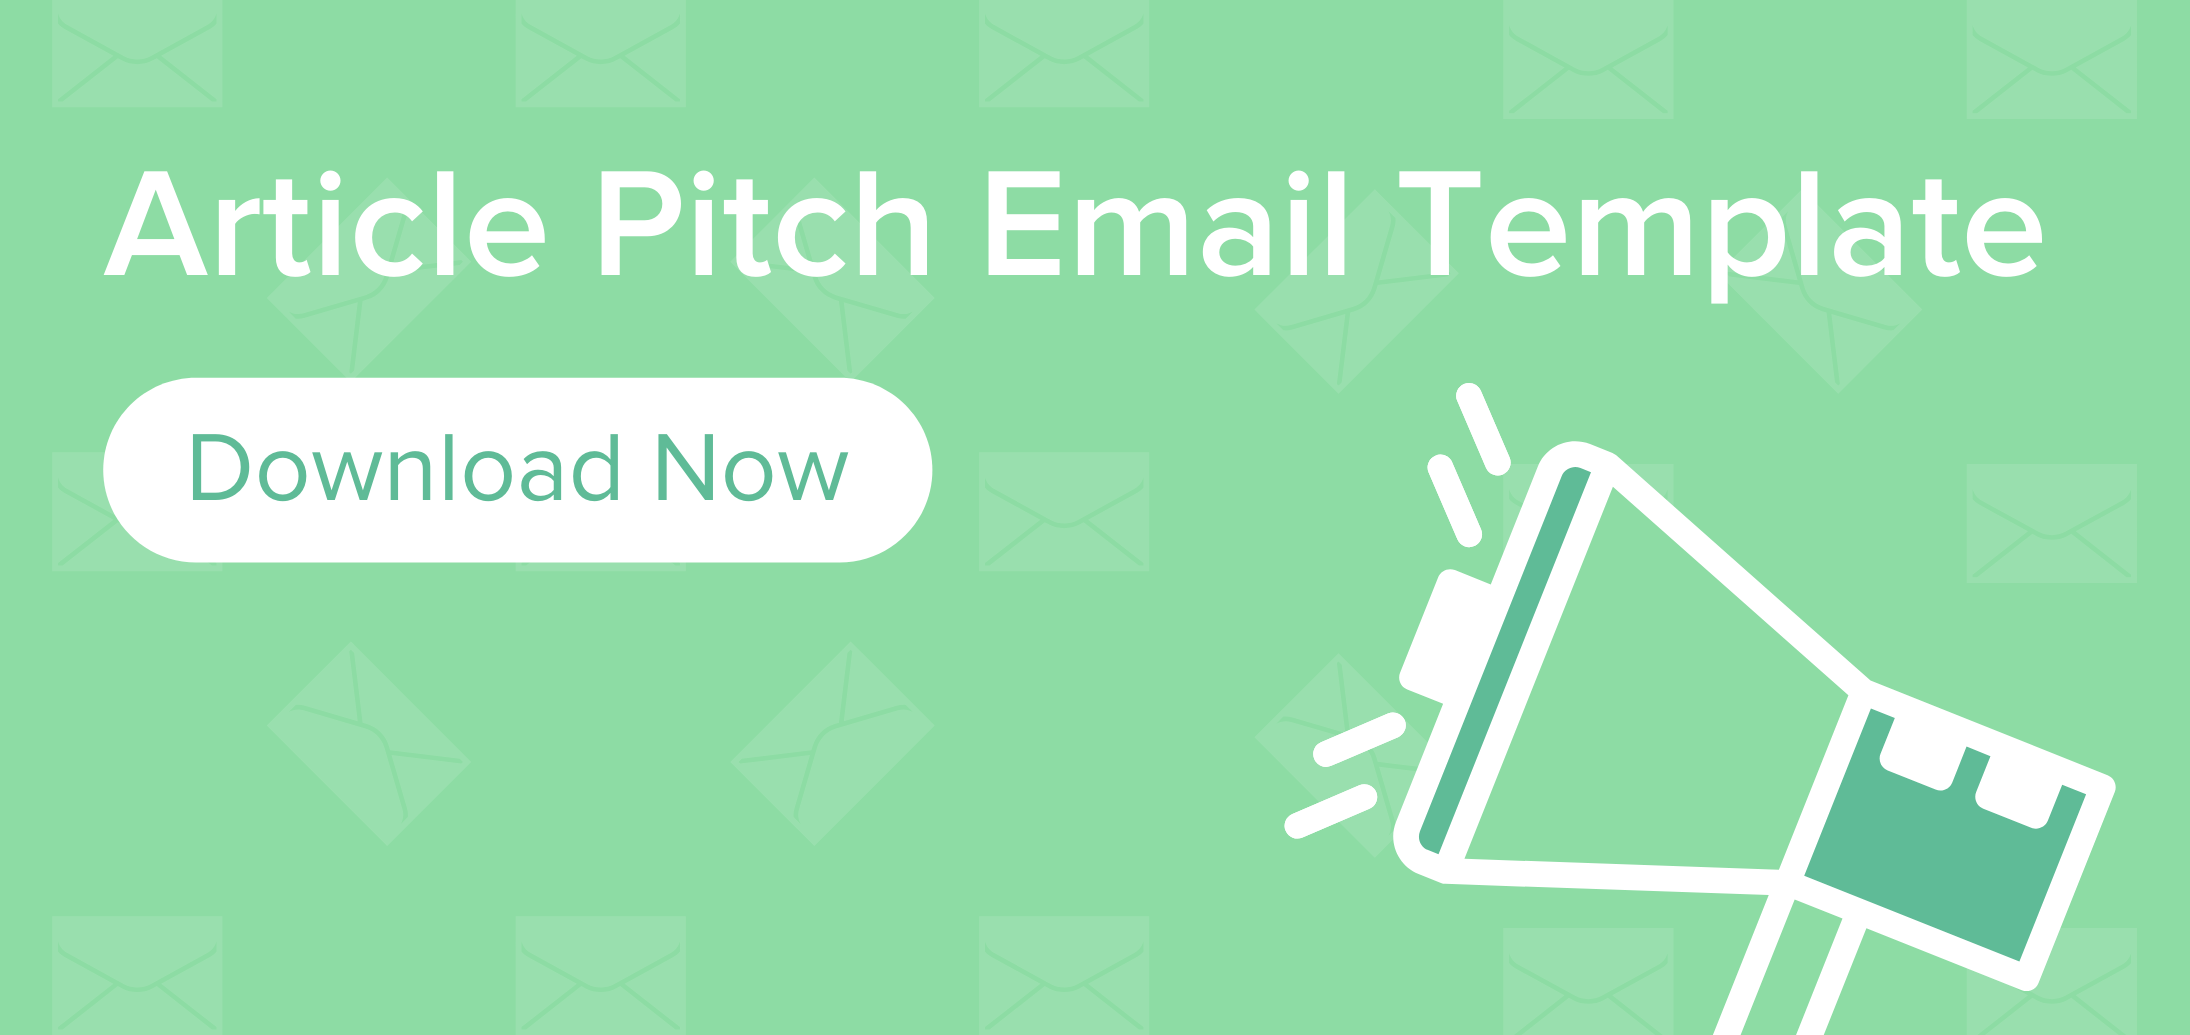 Article Pitch Email Template Download Button